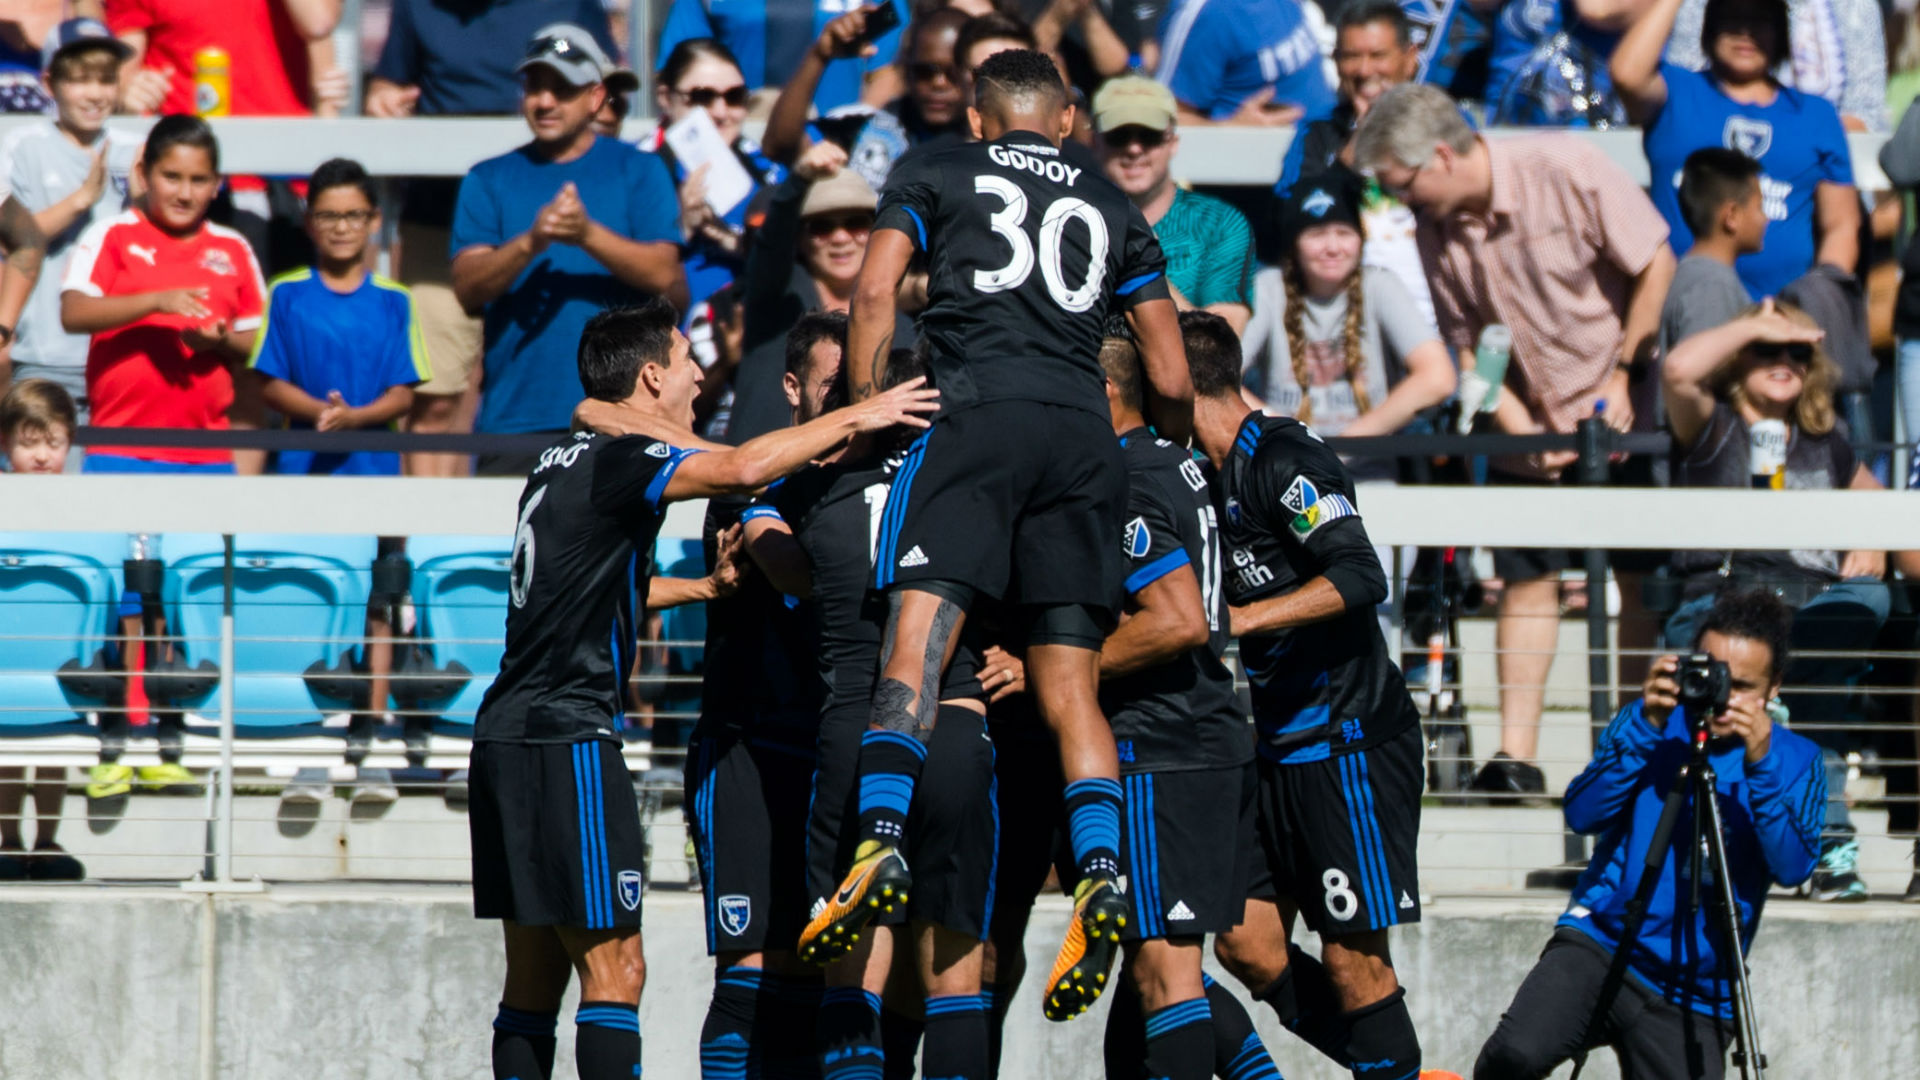 San-jose-earthquakes-mls_197ghul4szcw1r0zocwfvewpv